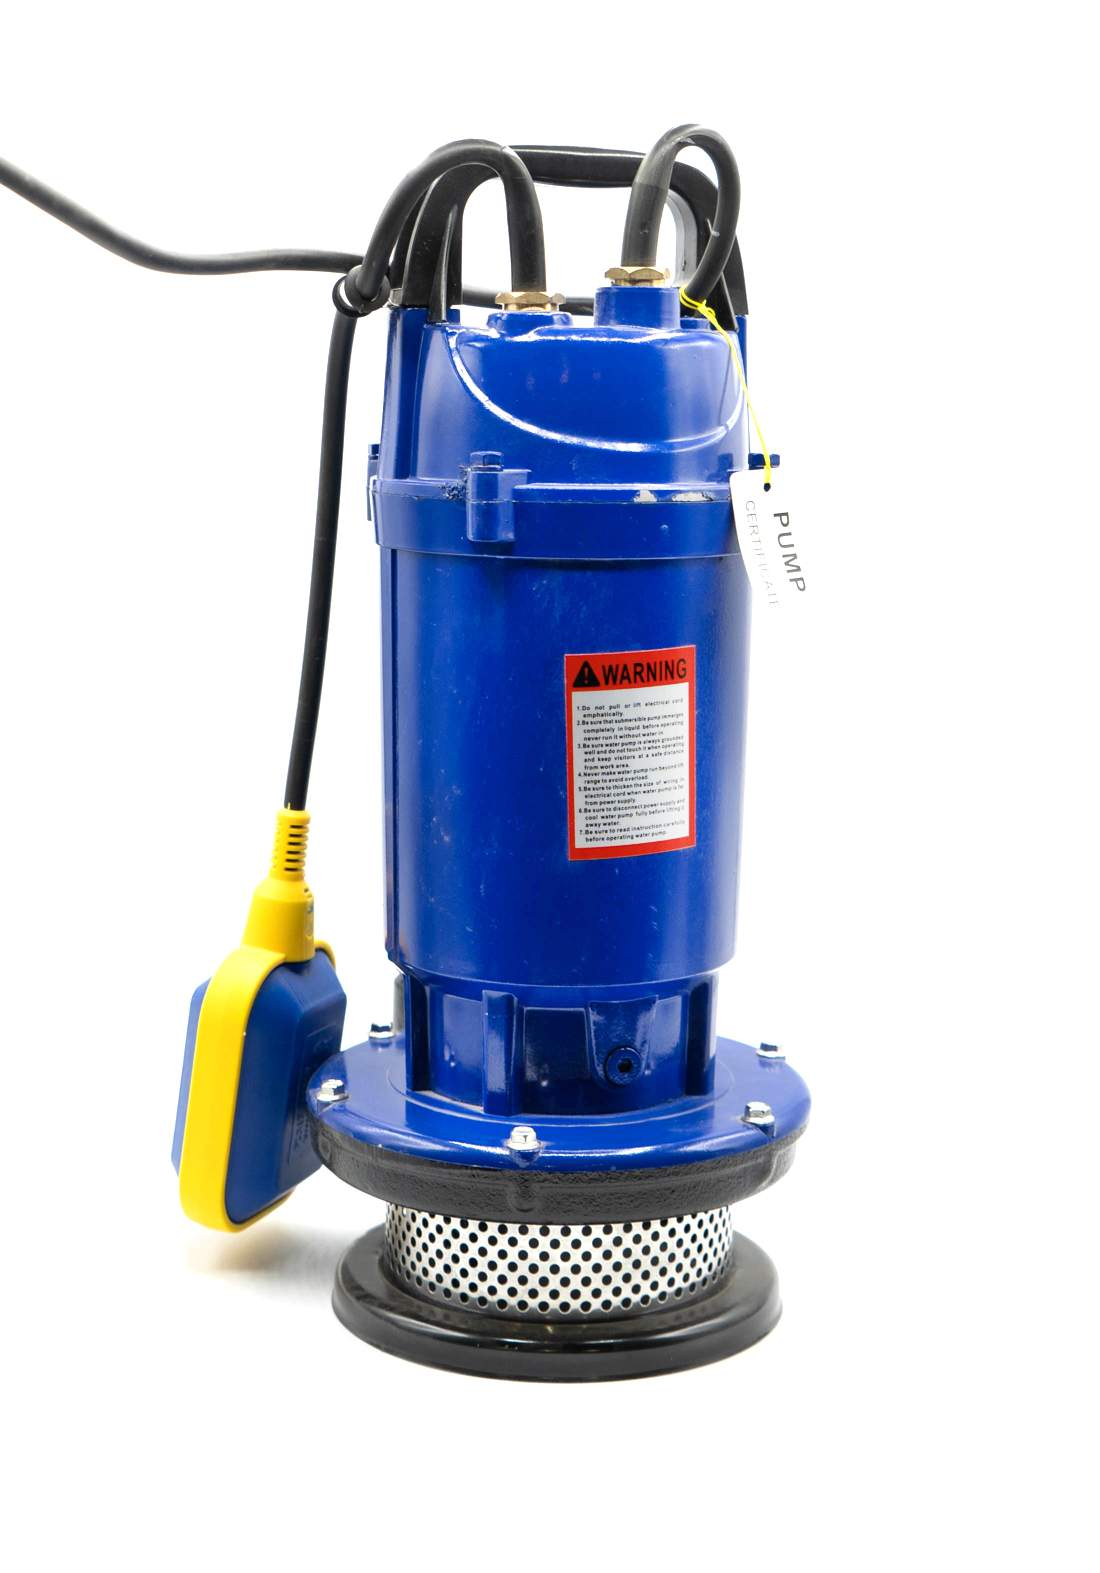 Sali W32032DX Submersible Water Pump QDX3m³/s ماطور ماء غطاس